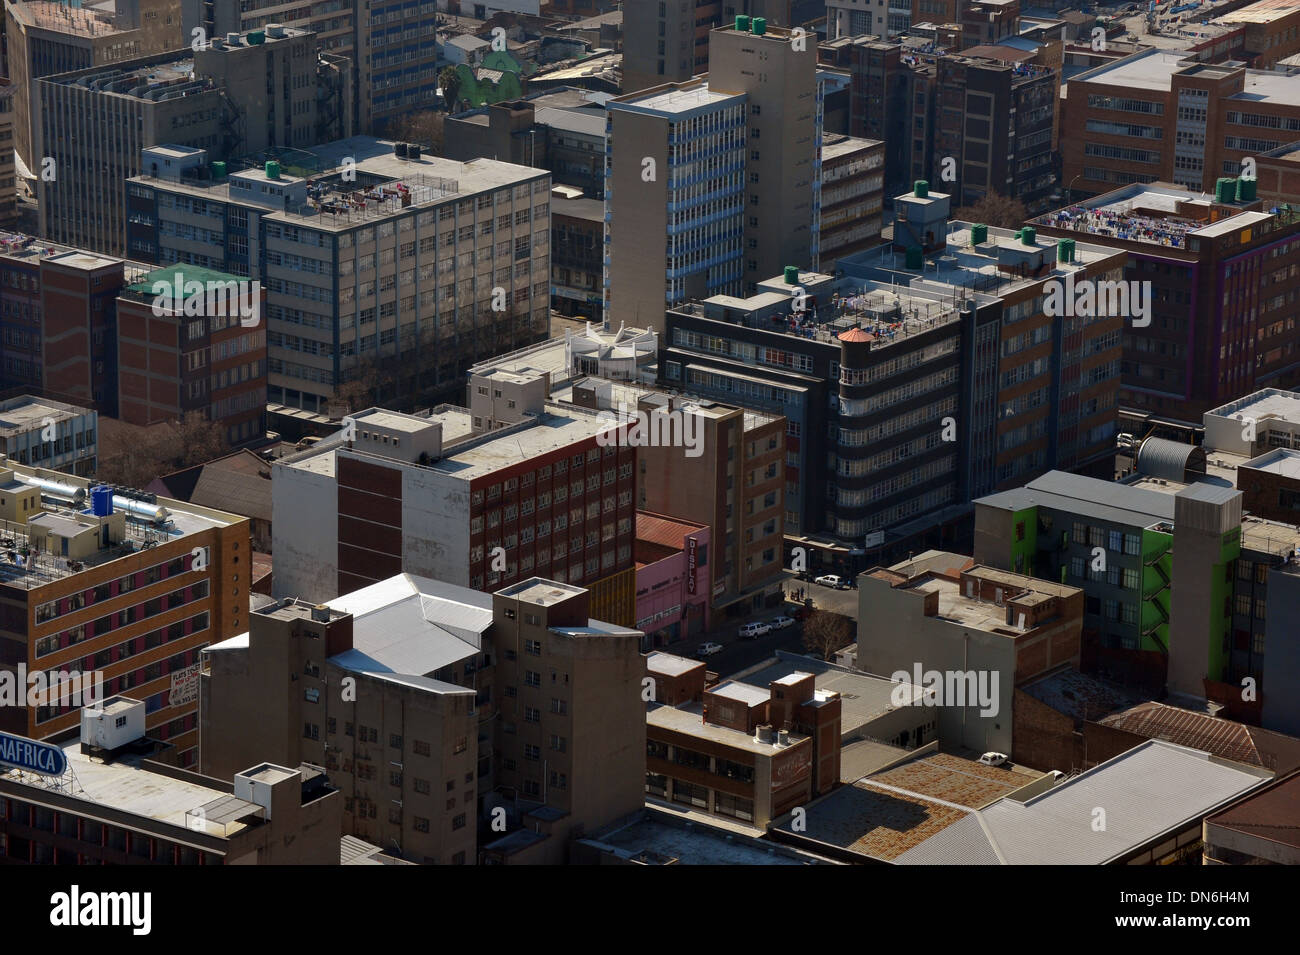 The view of an Urban area from an elevated position. - Stock Image